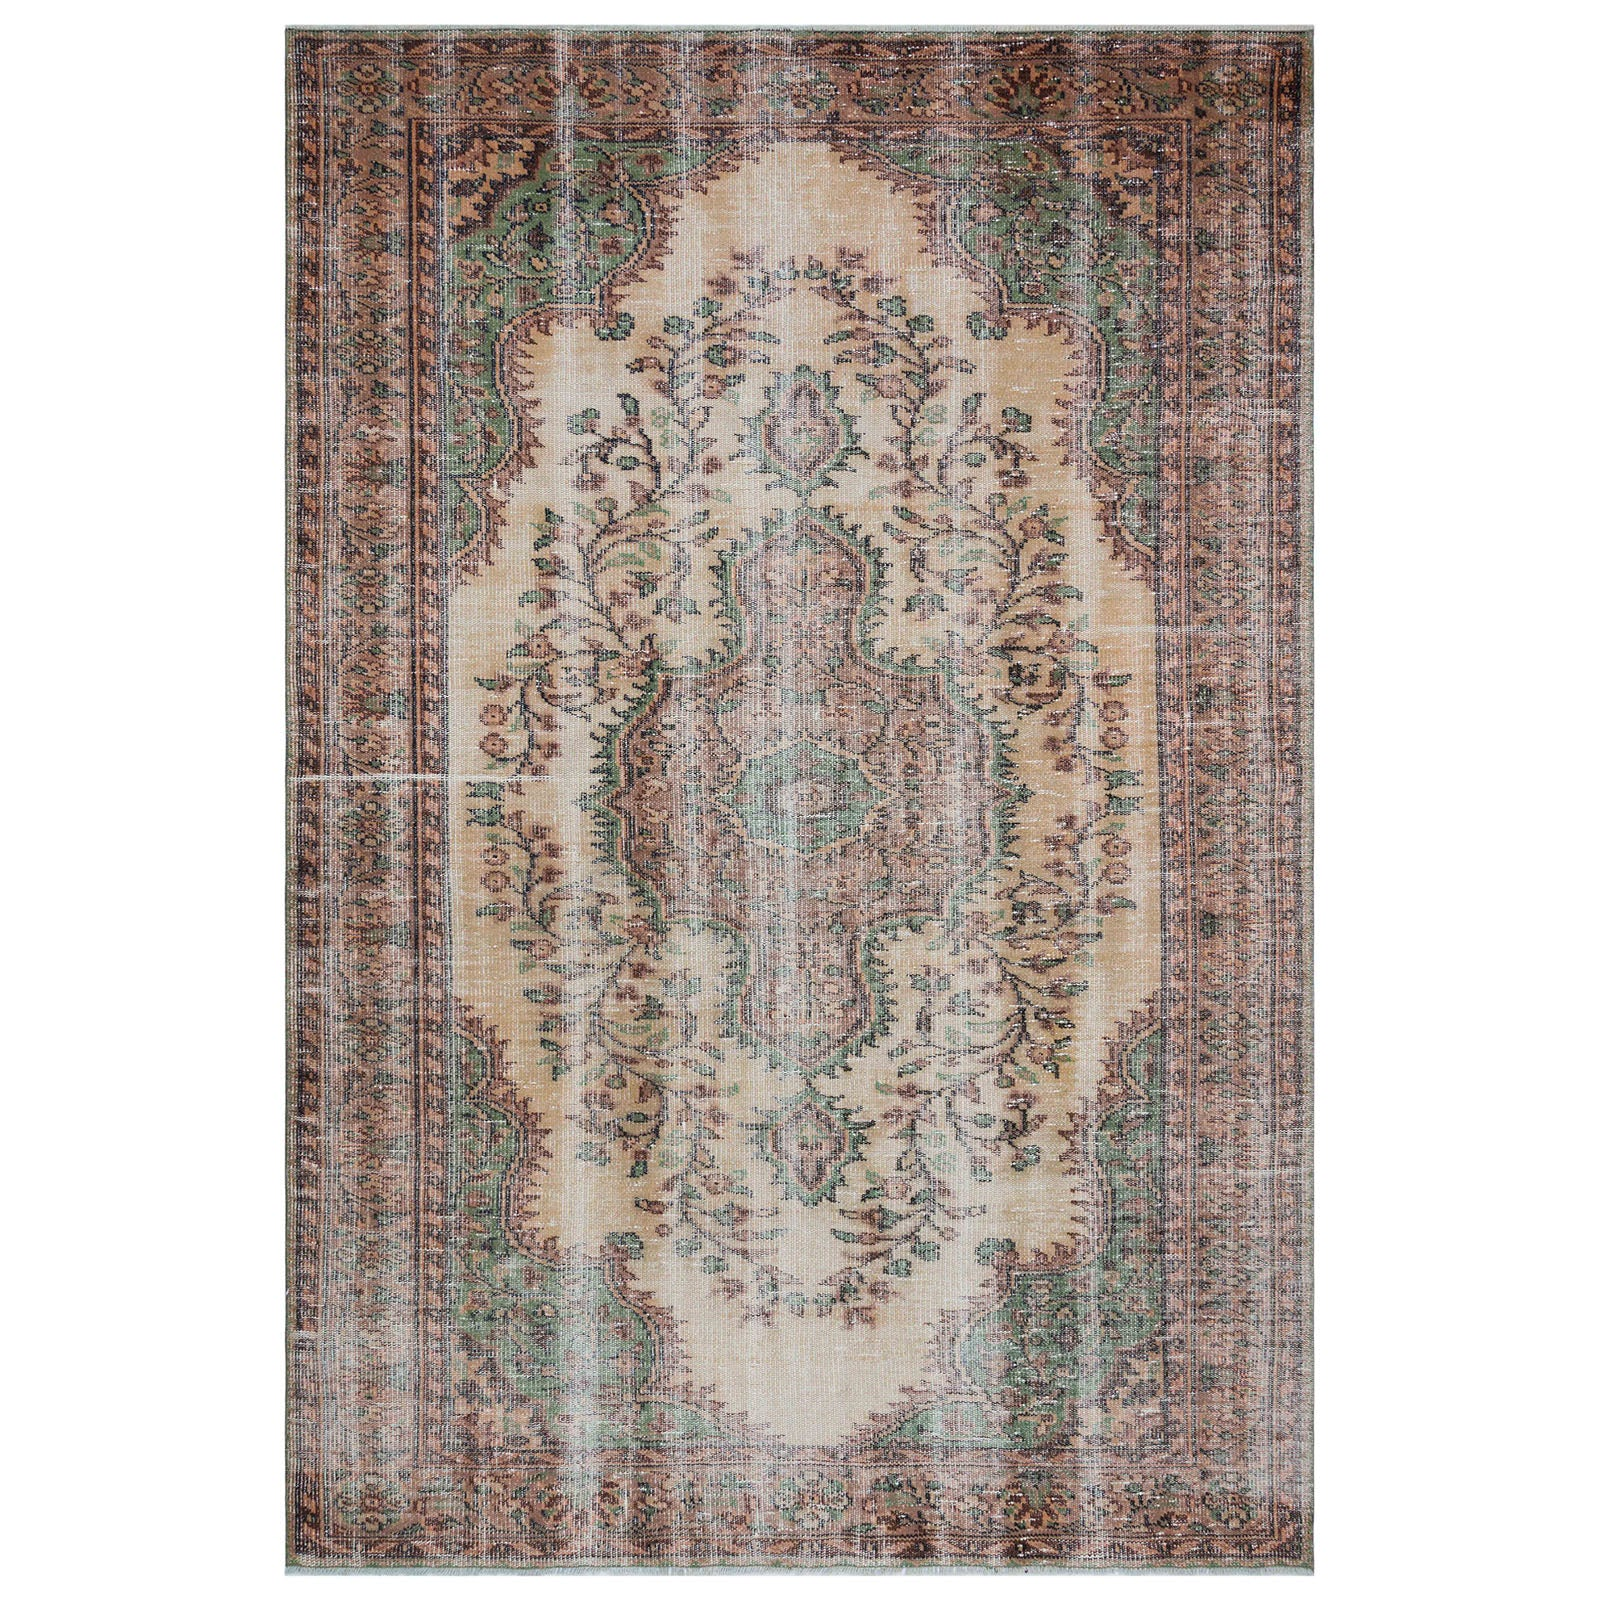 Hali 183X271  CM Bursa Handmade over dyed rug  1684